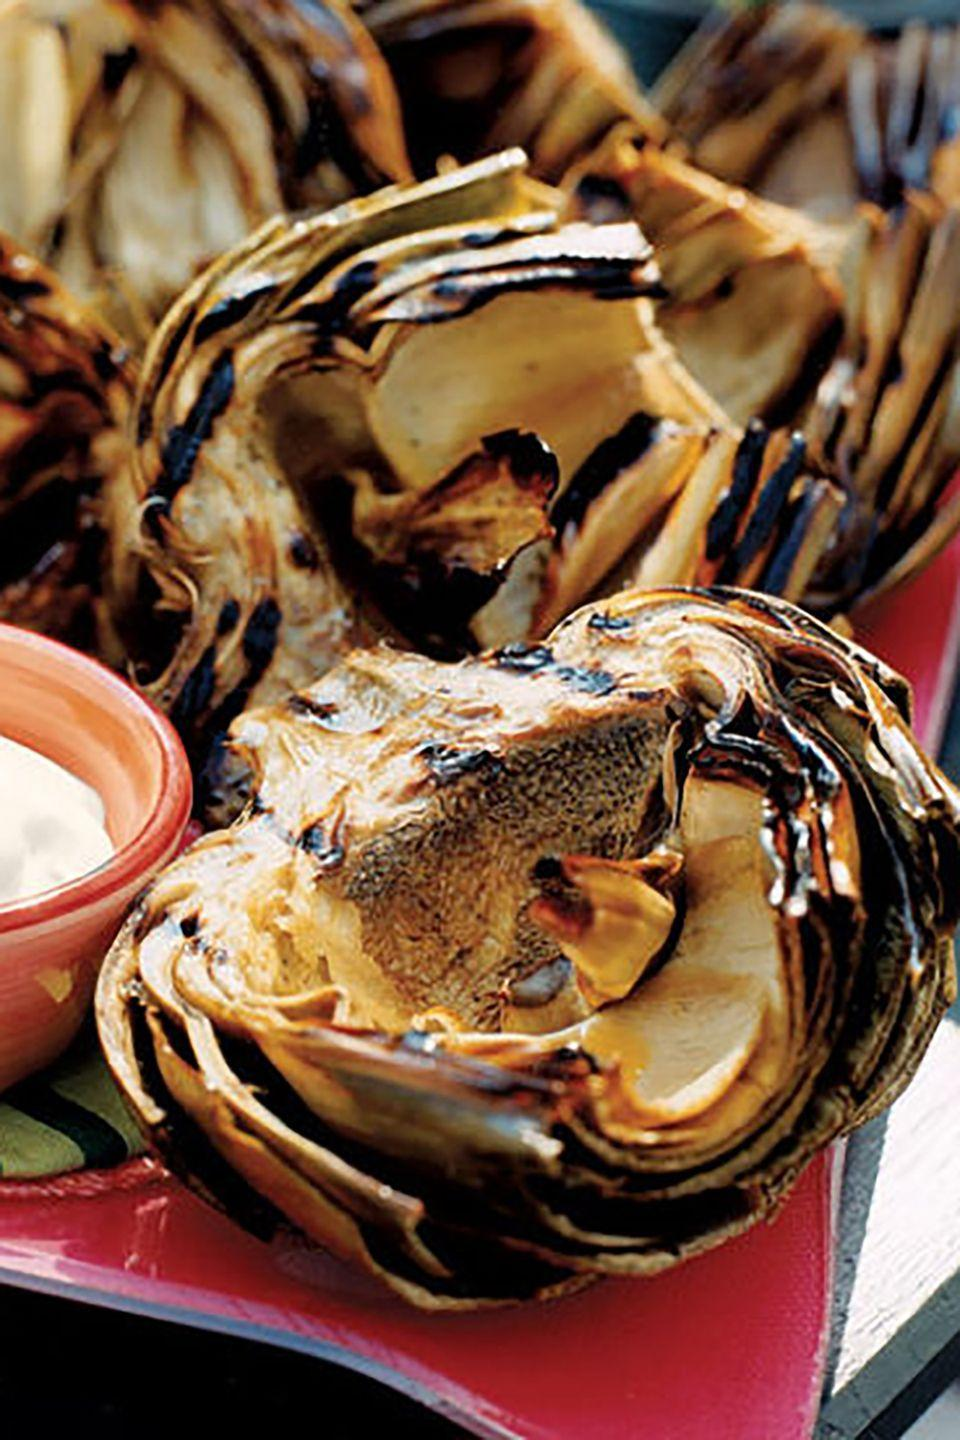 "<p>Believe it or not, artichokes can look as scrumptious as they taste, especially with this mouthwatering recipe.</p><p><strong><a href=""https://www.countryliving.com/food-drinks/recipes/a1216/grilled-artichokes-creamy-butter-dip-3322/"" rel=""nofollow noopener"" target=""_blank"" data-ylk=""slk:Get the recipe"" class=""link rapid-noclick-resp"">Get the recipe</a>.</strong><br></p><p><a class=""link rapid-noclick-resp"" href=""https://www.amazon.com/Hamilton-Beach-25361-Removable-Stainless/dp/B00KLVY3TW/?tag=syn-yahoo-20&ascsubtag=%5Bartid%7C10063.g.35089489%5Bsrc%7Cyahoo-us"" rel=""nofollow noopener"" target=""_blank"" data-ylk=""slk:SHOP INDOOR GRILLS"">SHOP INDOOR GRILLS</a></p>"